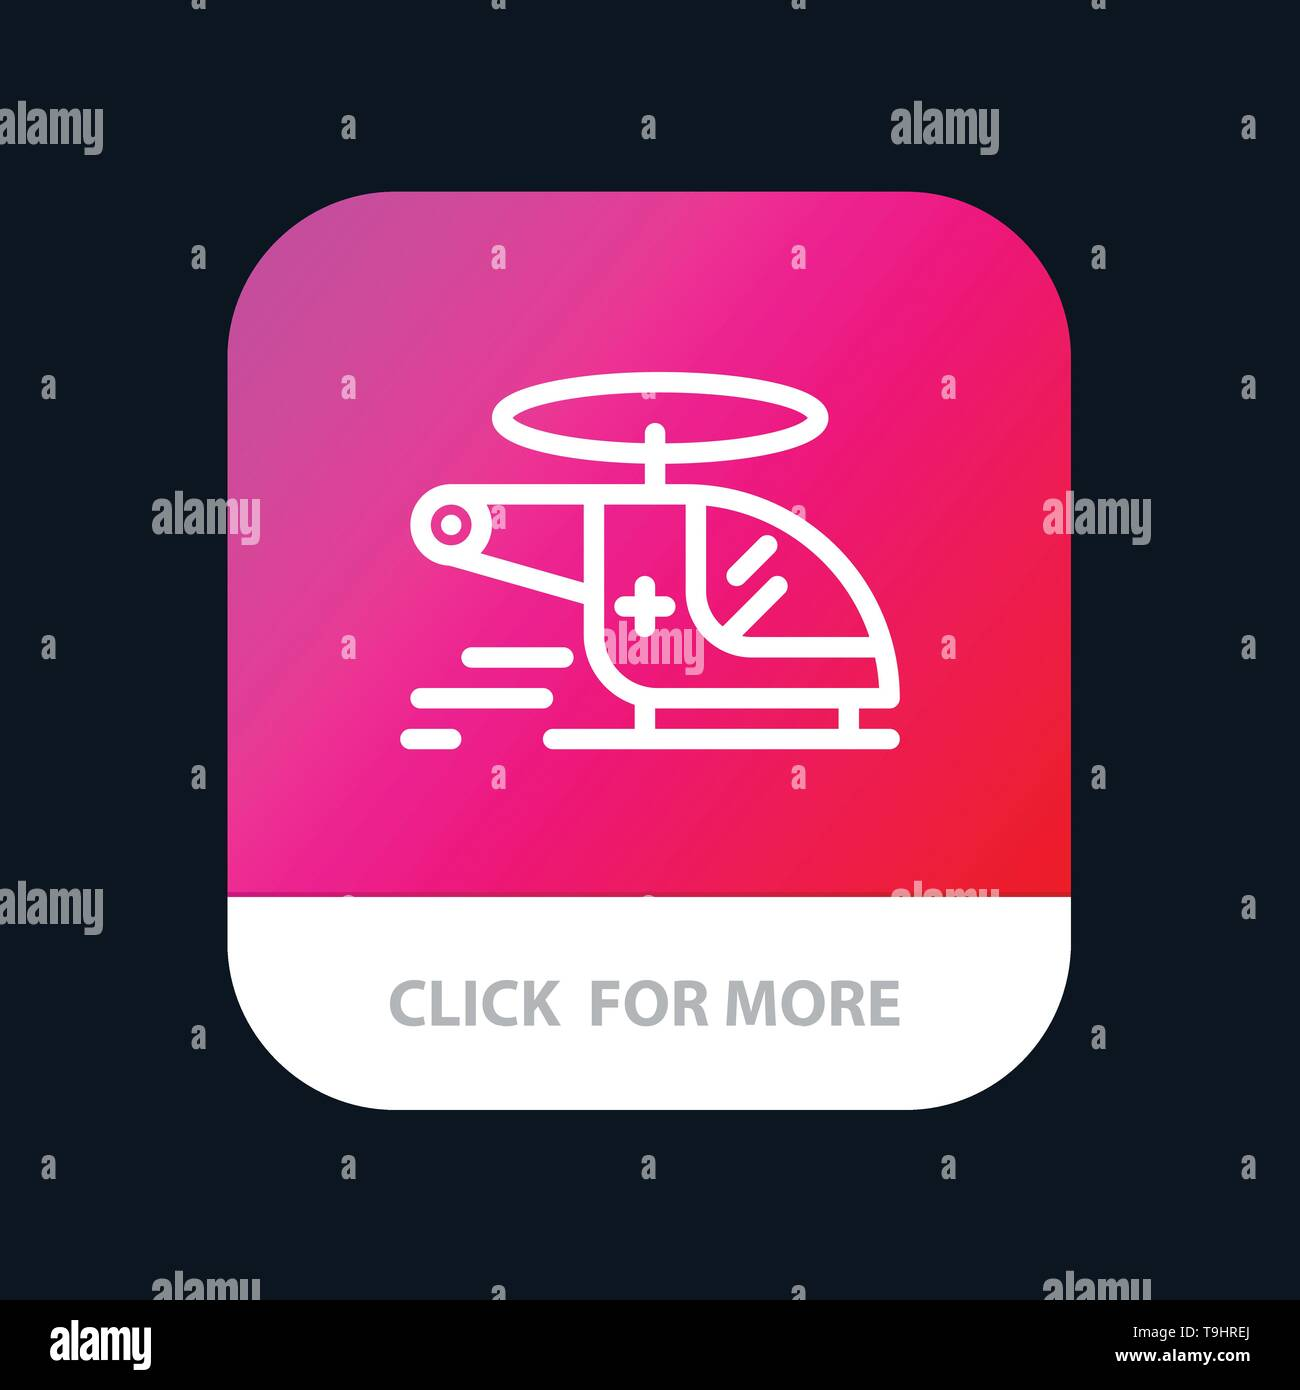 Helicopter, Chopper, Medical, Ambulance, Air Mobile App Button. Android and IOS Line Version - Stock Image